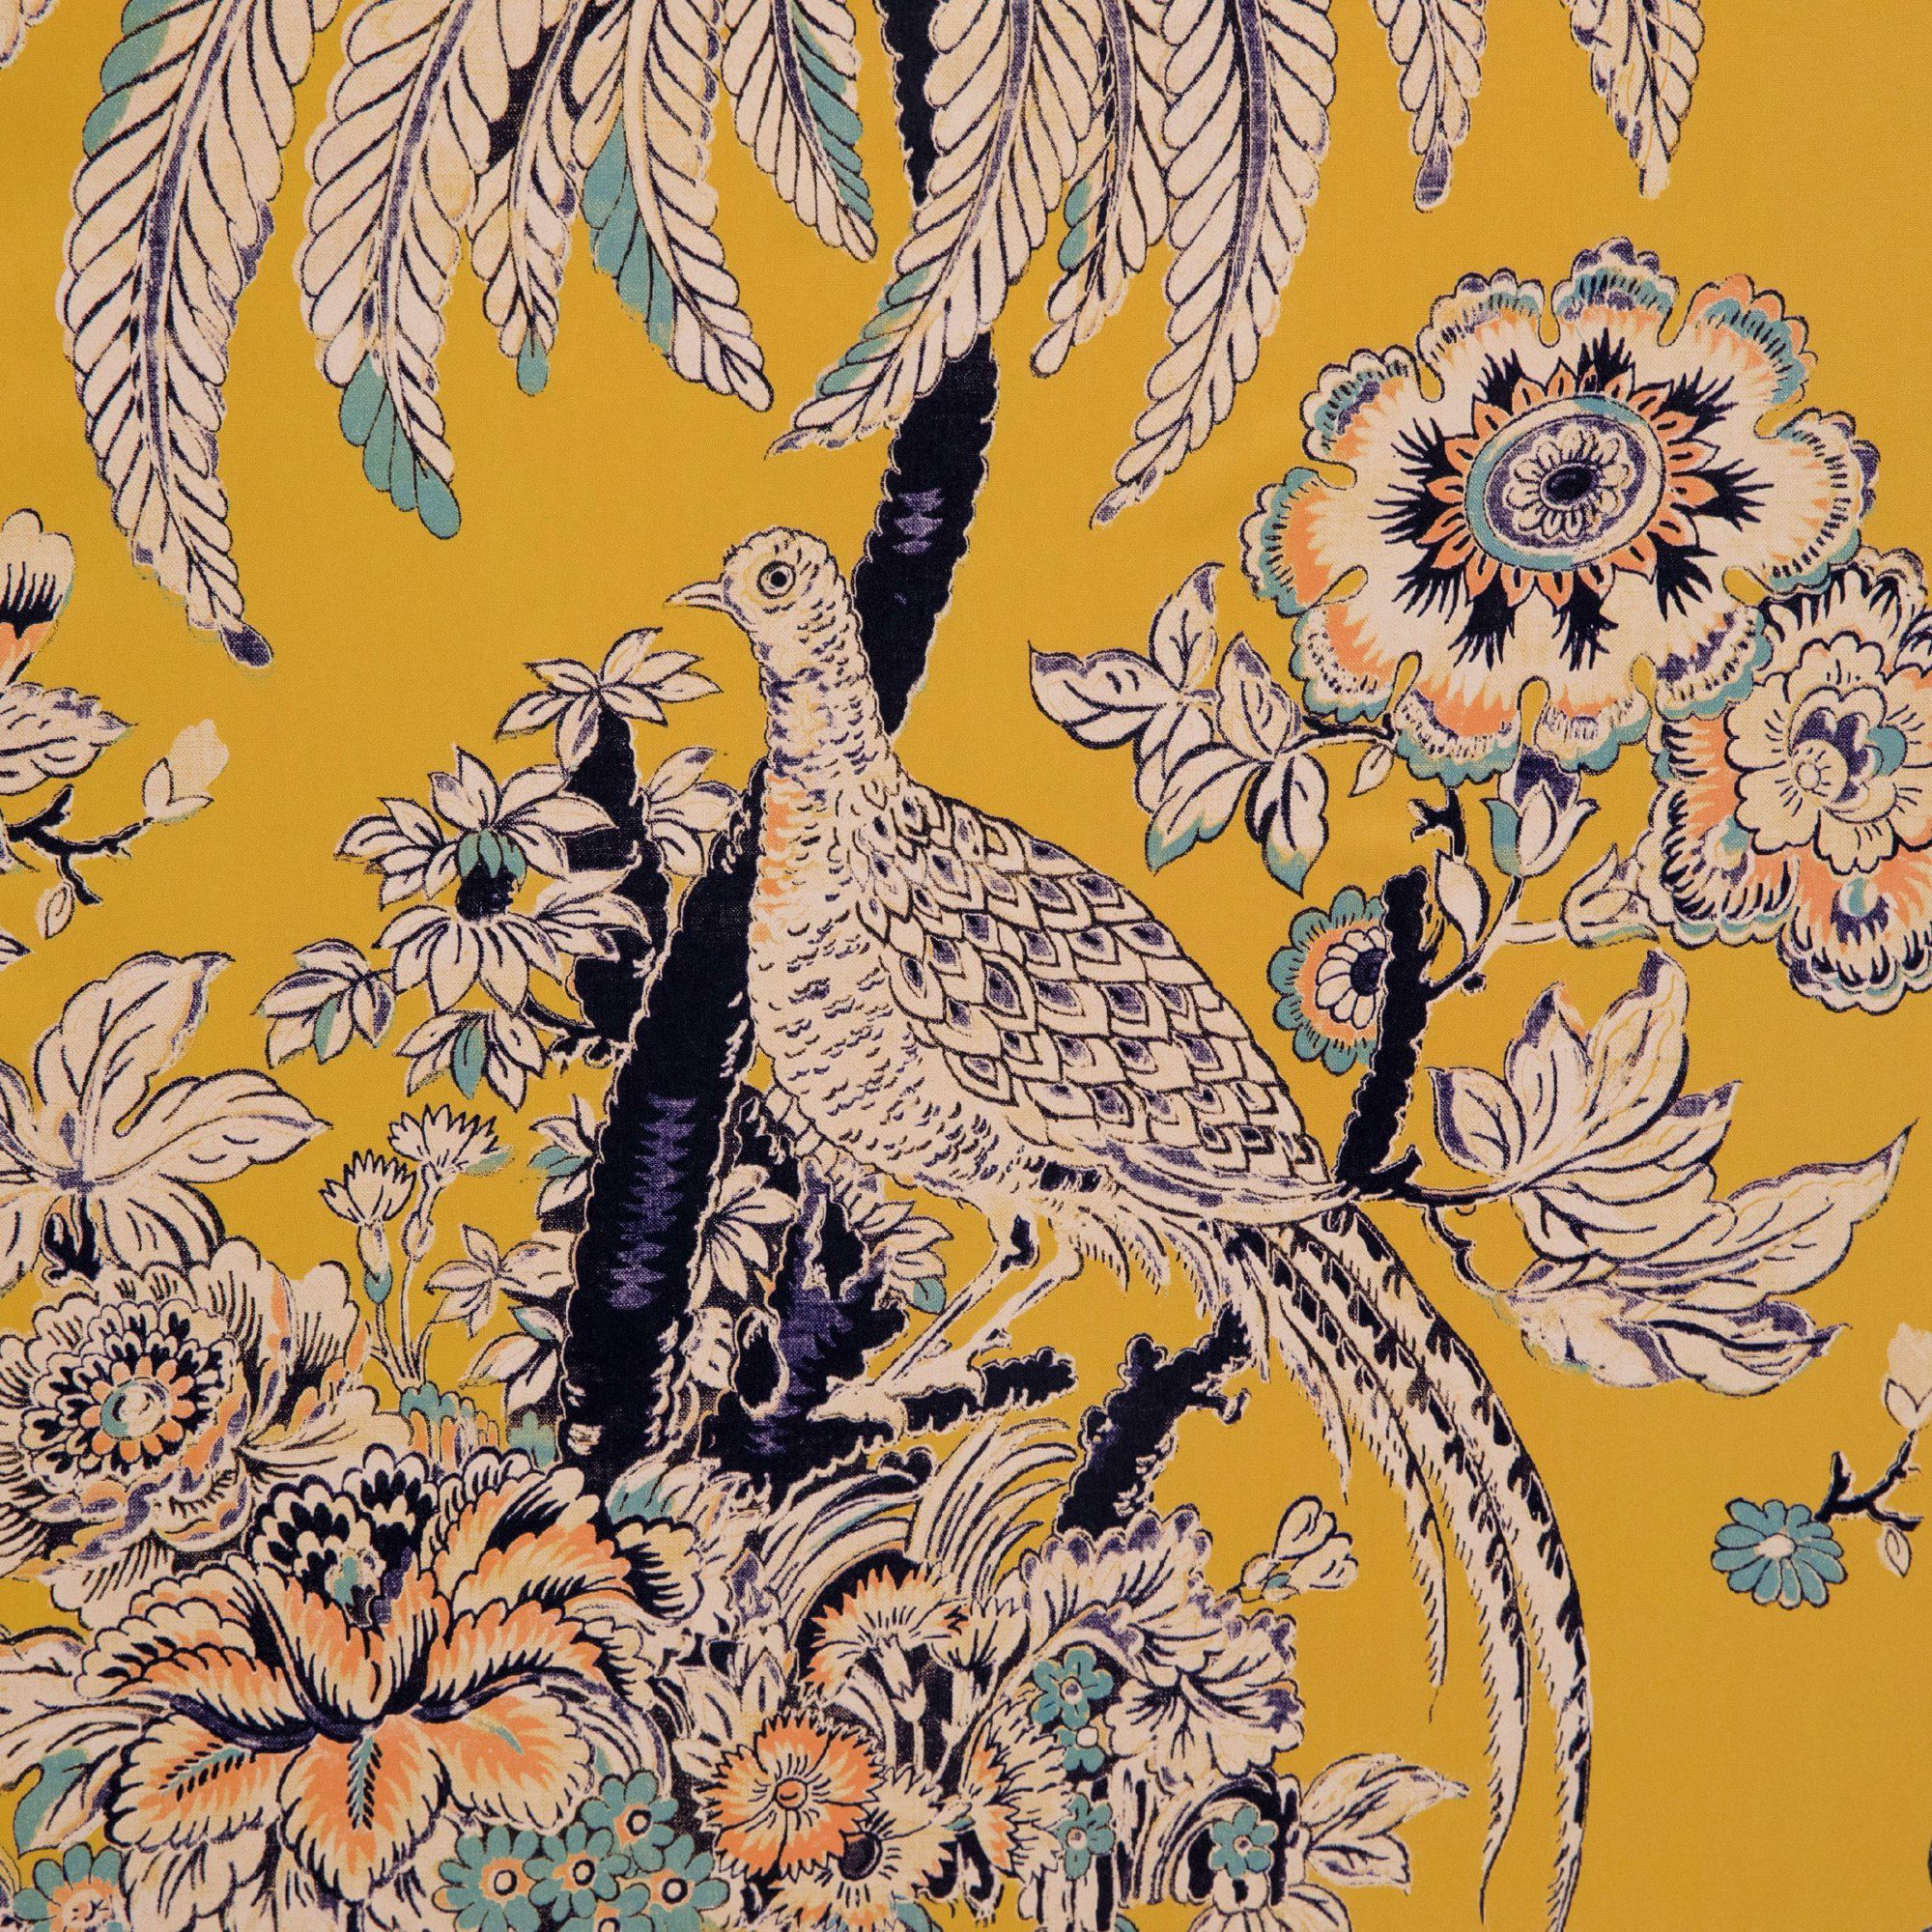 Tropical Toile Peel And Stick Wallpaper By Drew Barrymore Flower Home Yellow Walmart Com In 2021 Peel And Stick Wallpaper Wallpaper Tree House Wallpaper